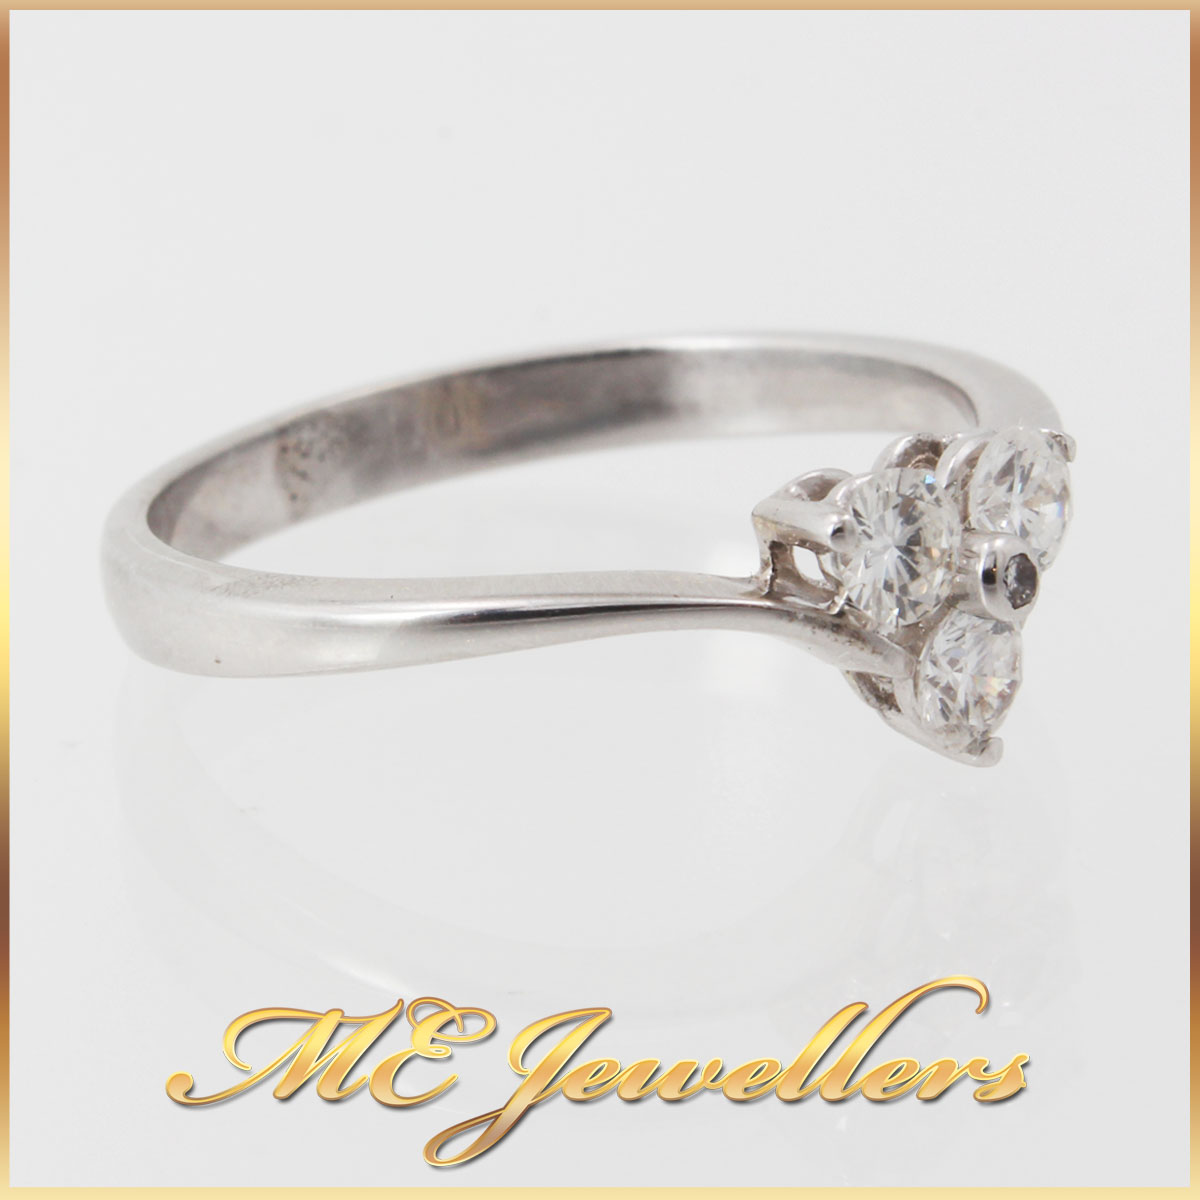 9K White Gold Diamond Dress Ring